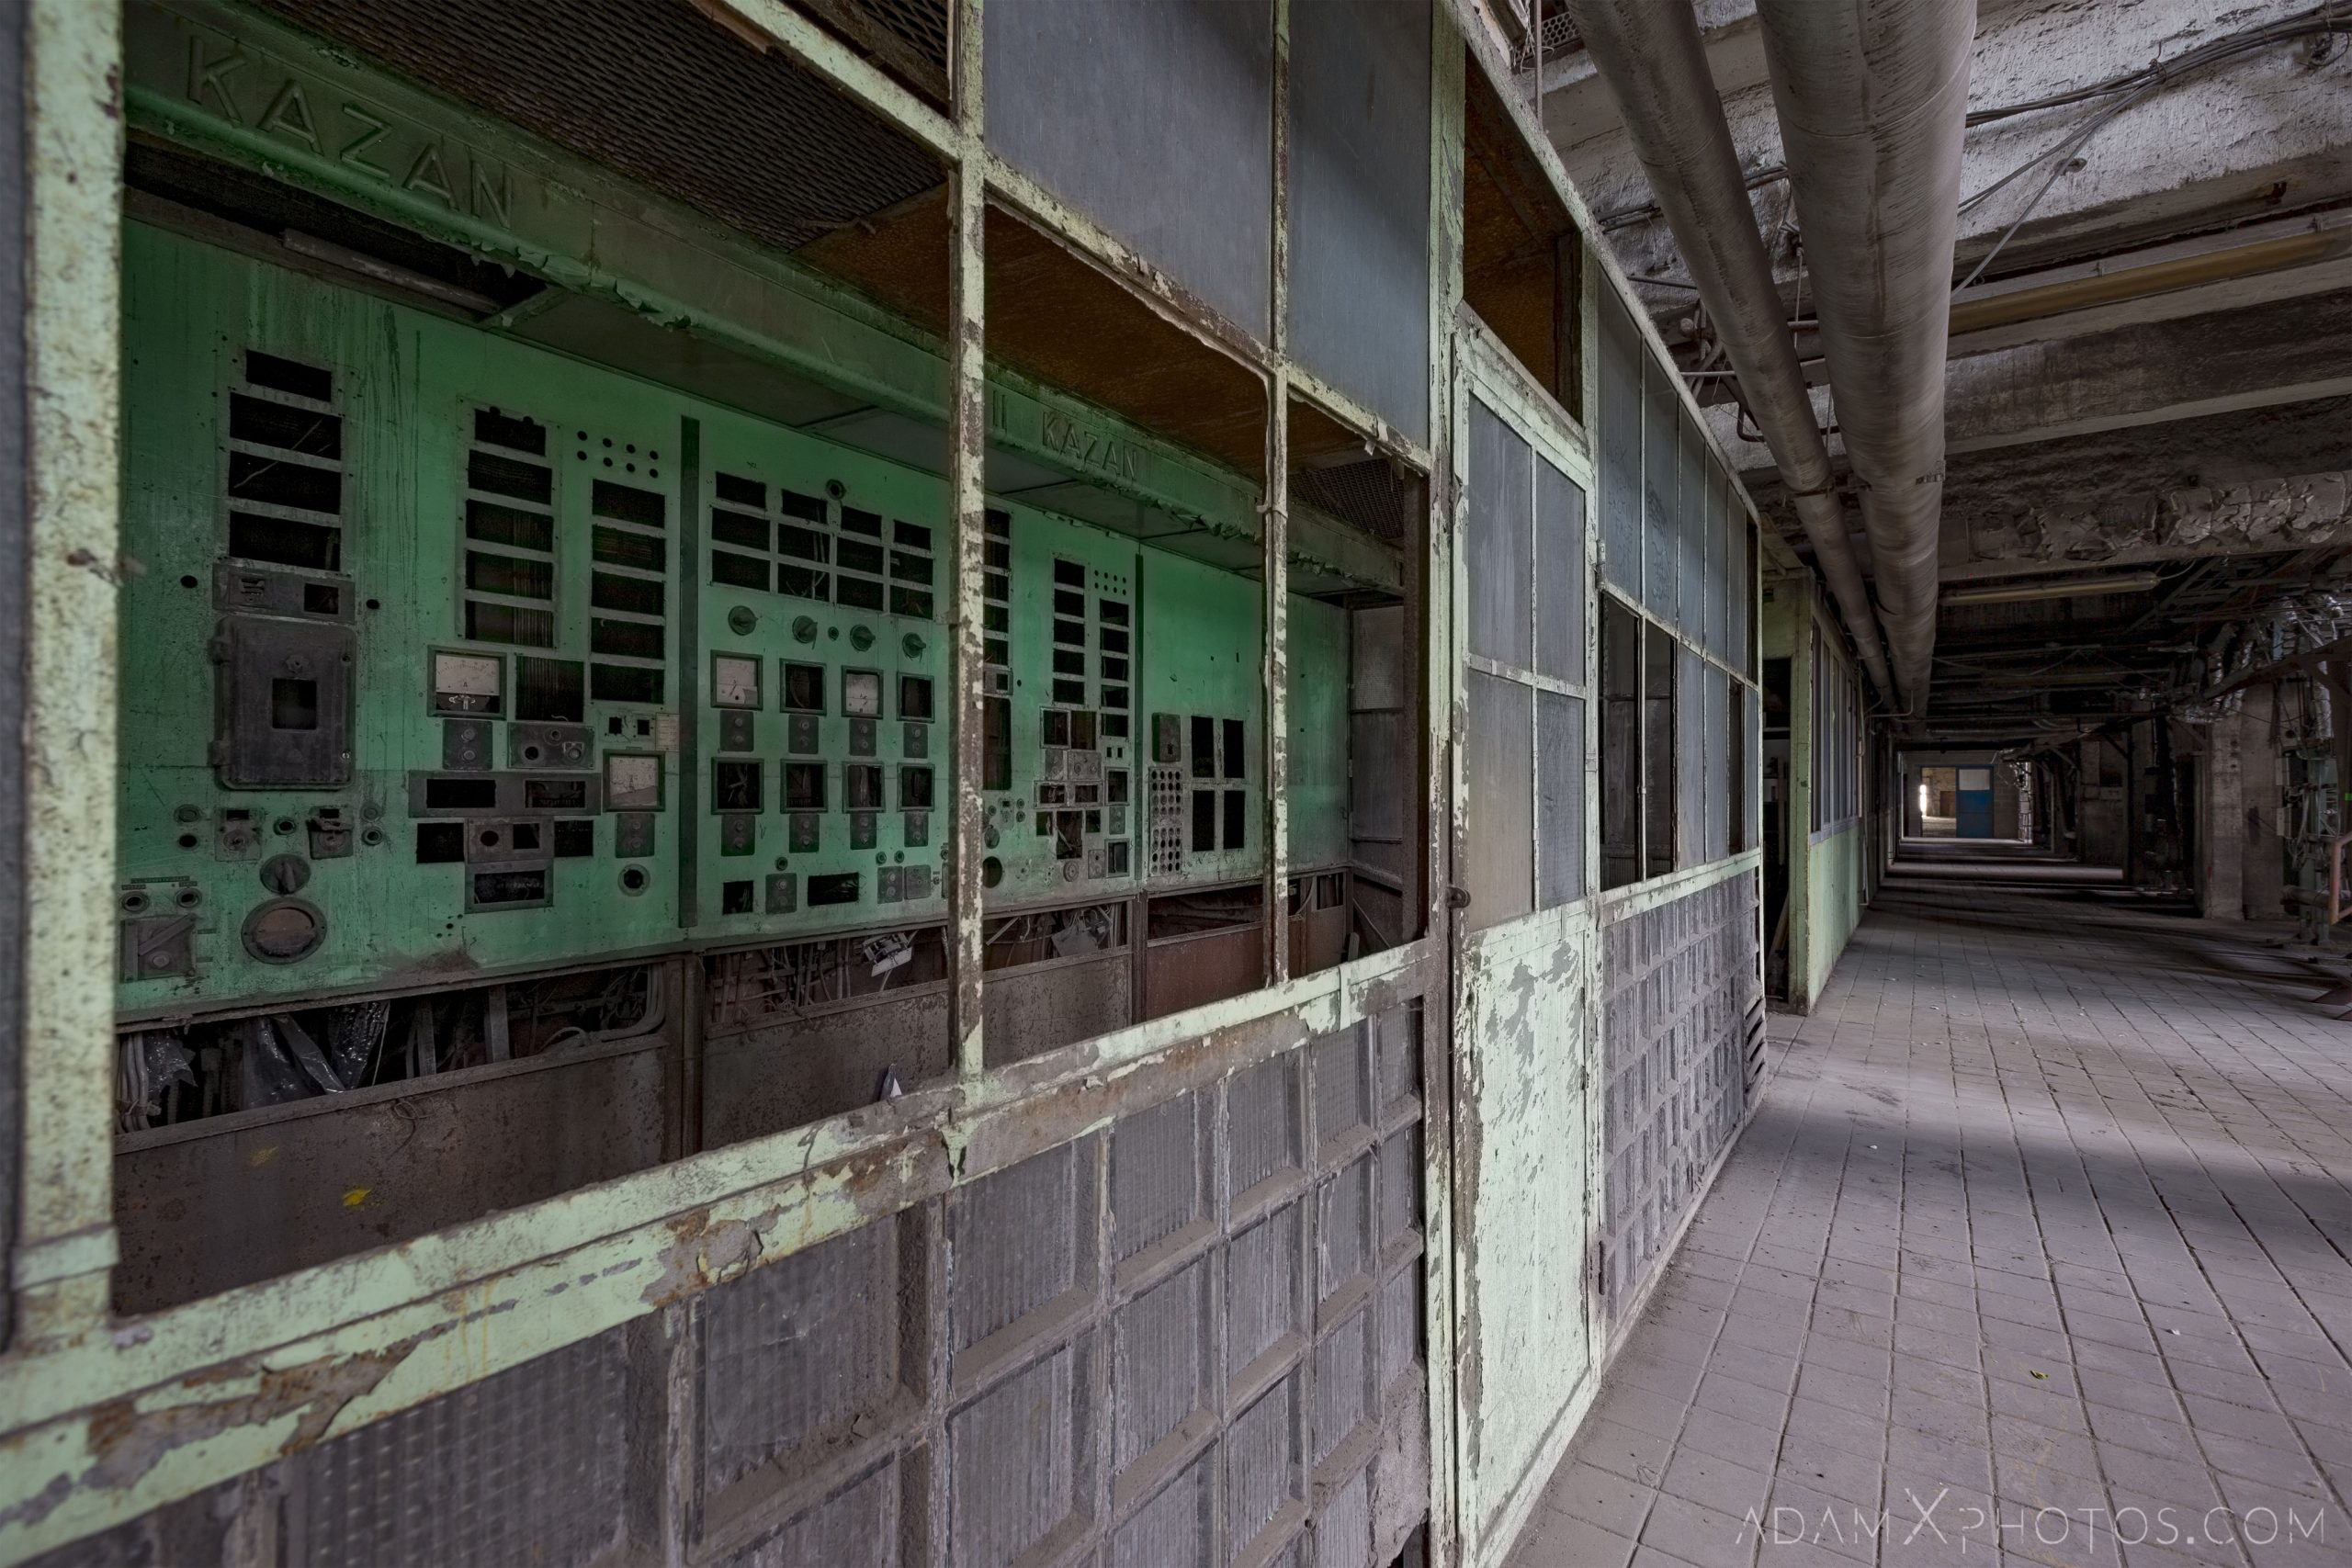 Green control panels industry industrial rusty rusting Bladerunner Blade Runner 2049 Powerplant Inota Shephard's Power Plant Hungary Adam X Urbex Urban Exploration Access 2018 Abandoned decay ruins lost forgotten derelict location creepy haunting eerie security